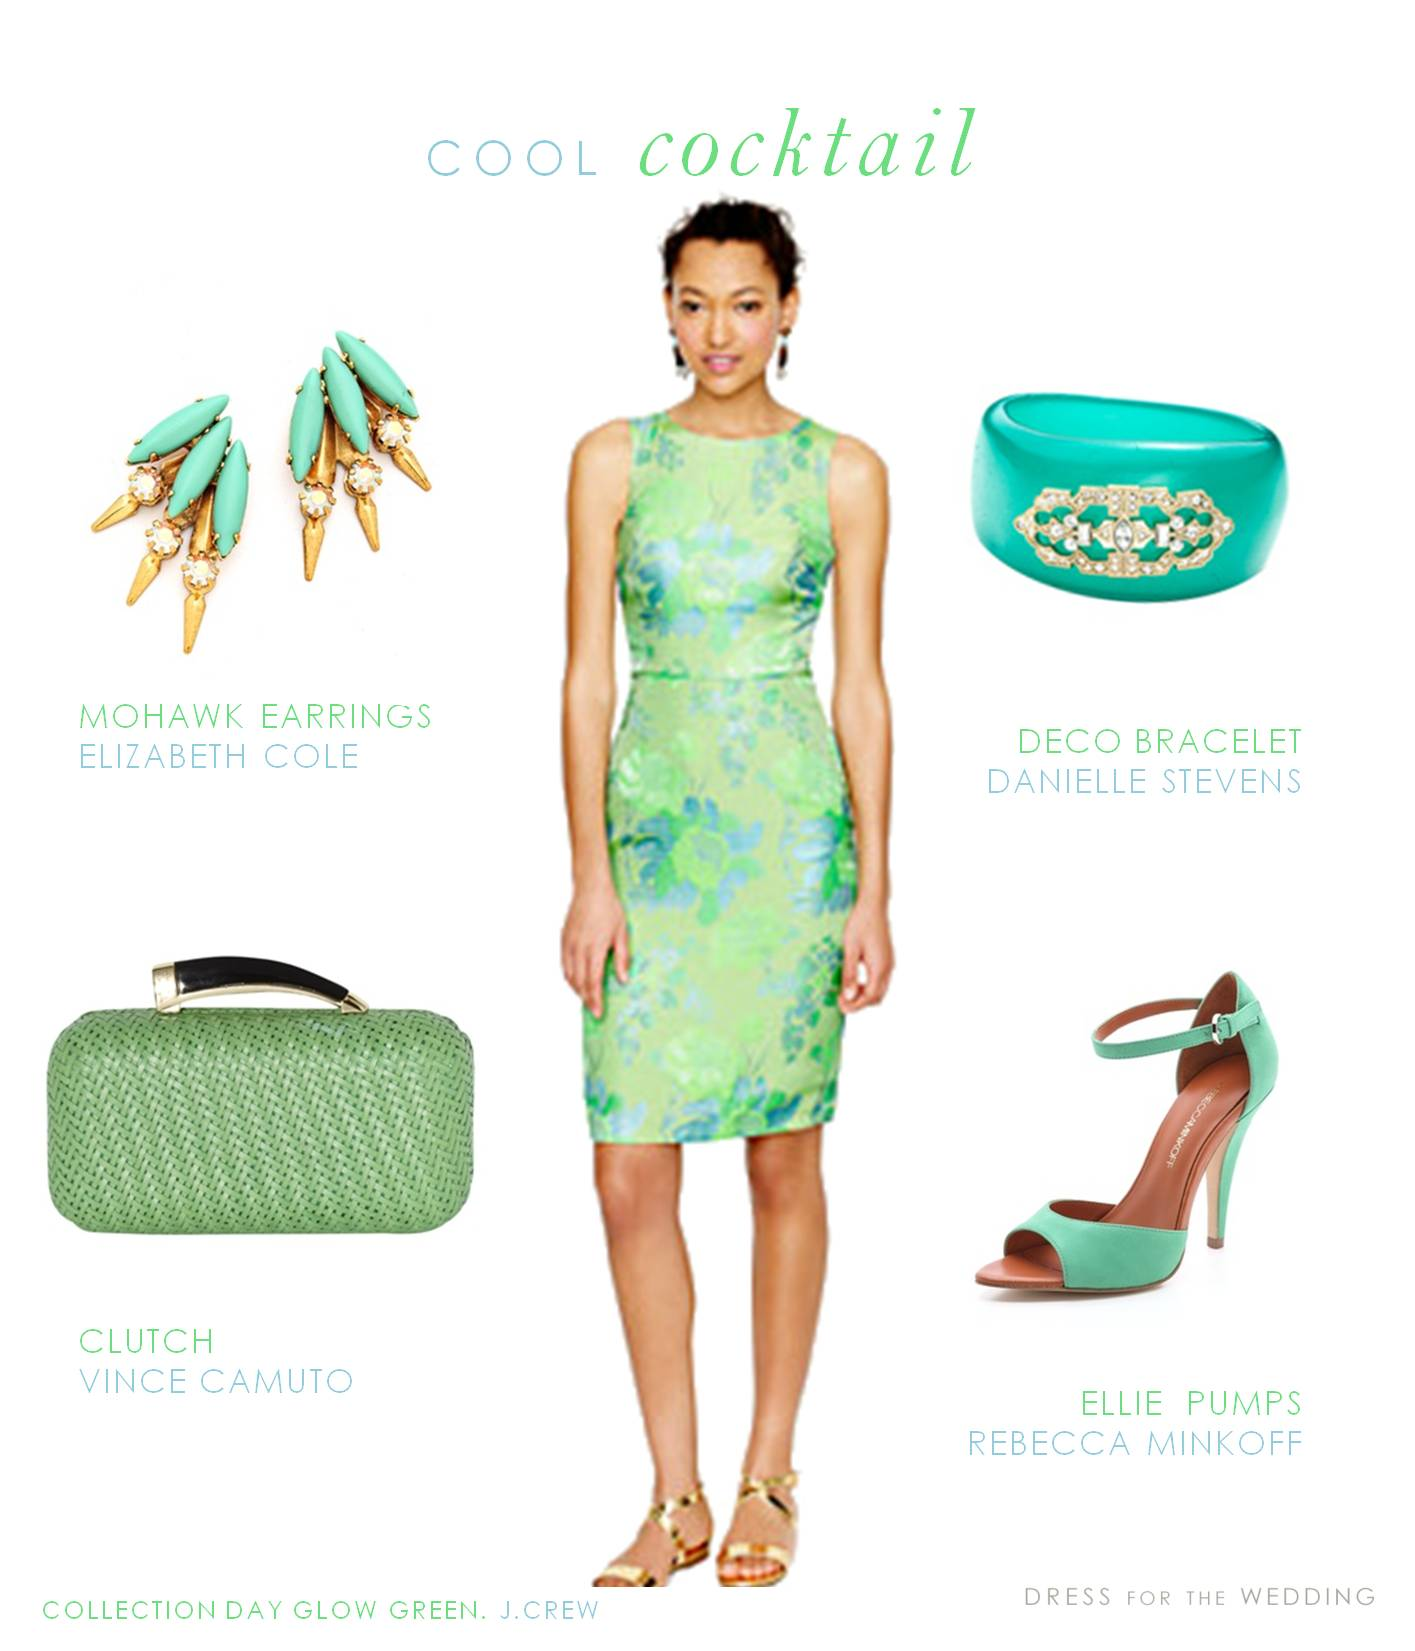 Mint and aqua cocktail dress for a wedding guest for Dress as a wedding guest